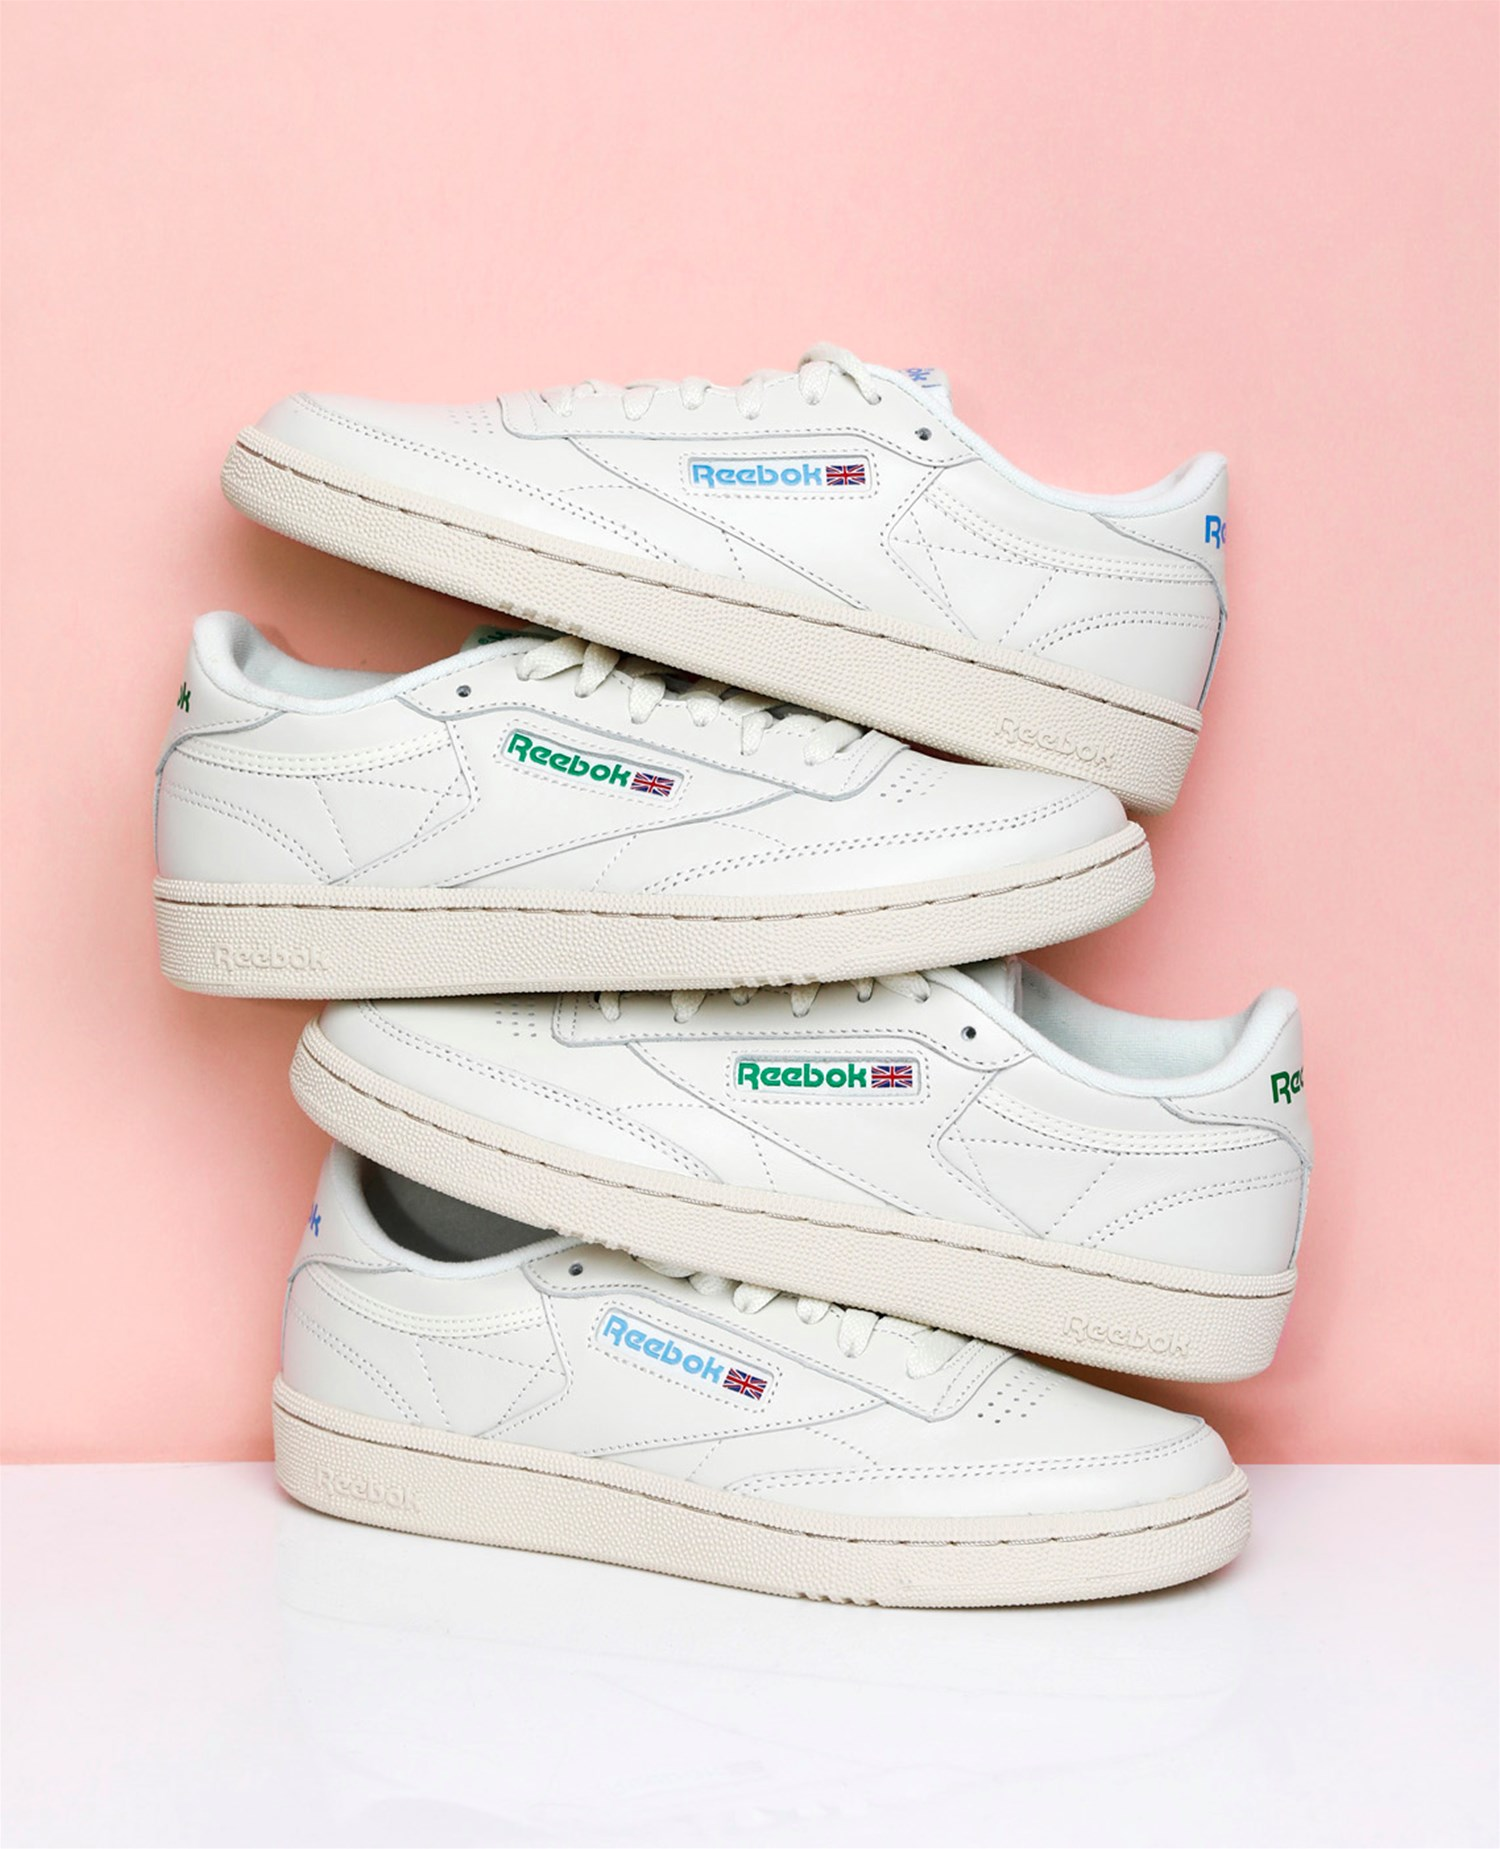 Naked - Supplying girls with sneakers